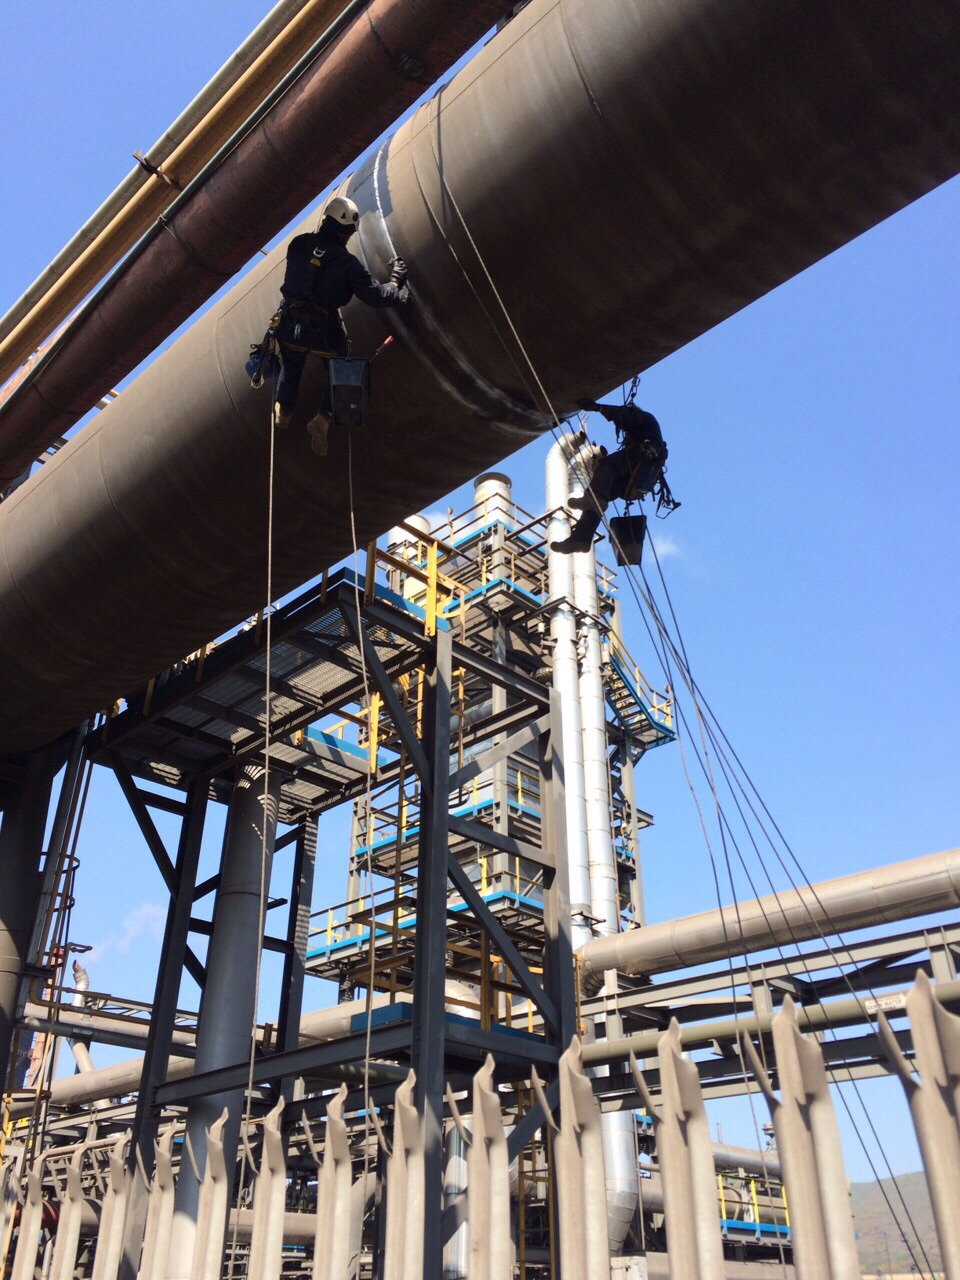 <Industrial rope access and NDT inspection of pipeline re-applying paint coating >